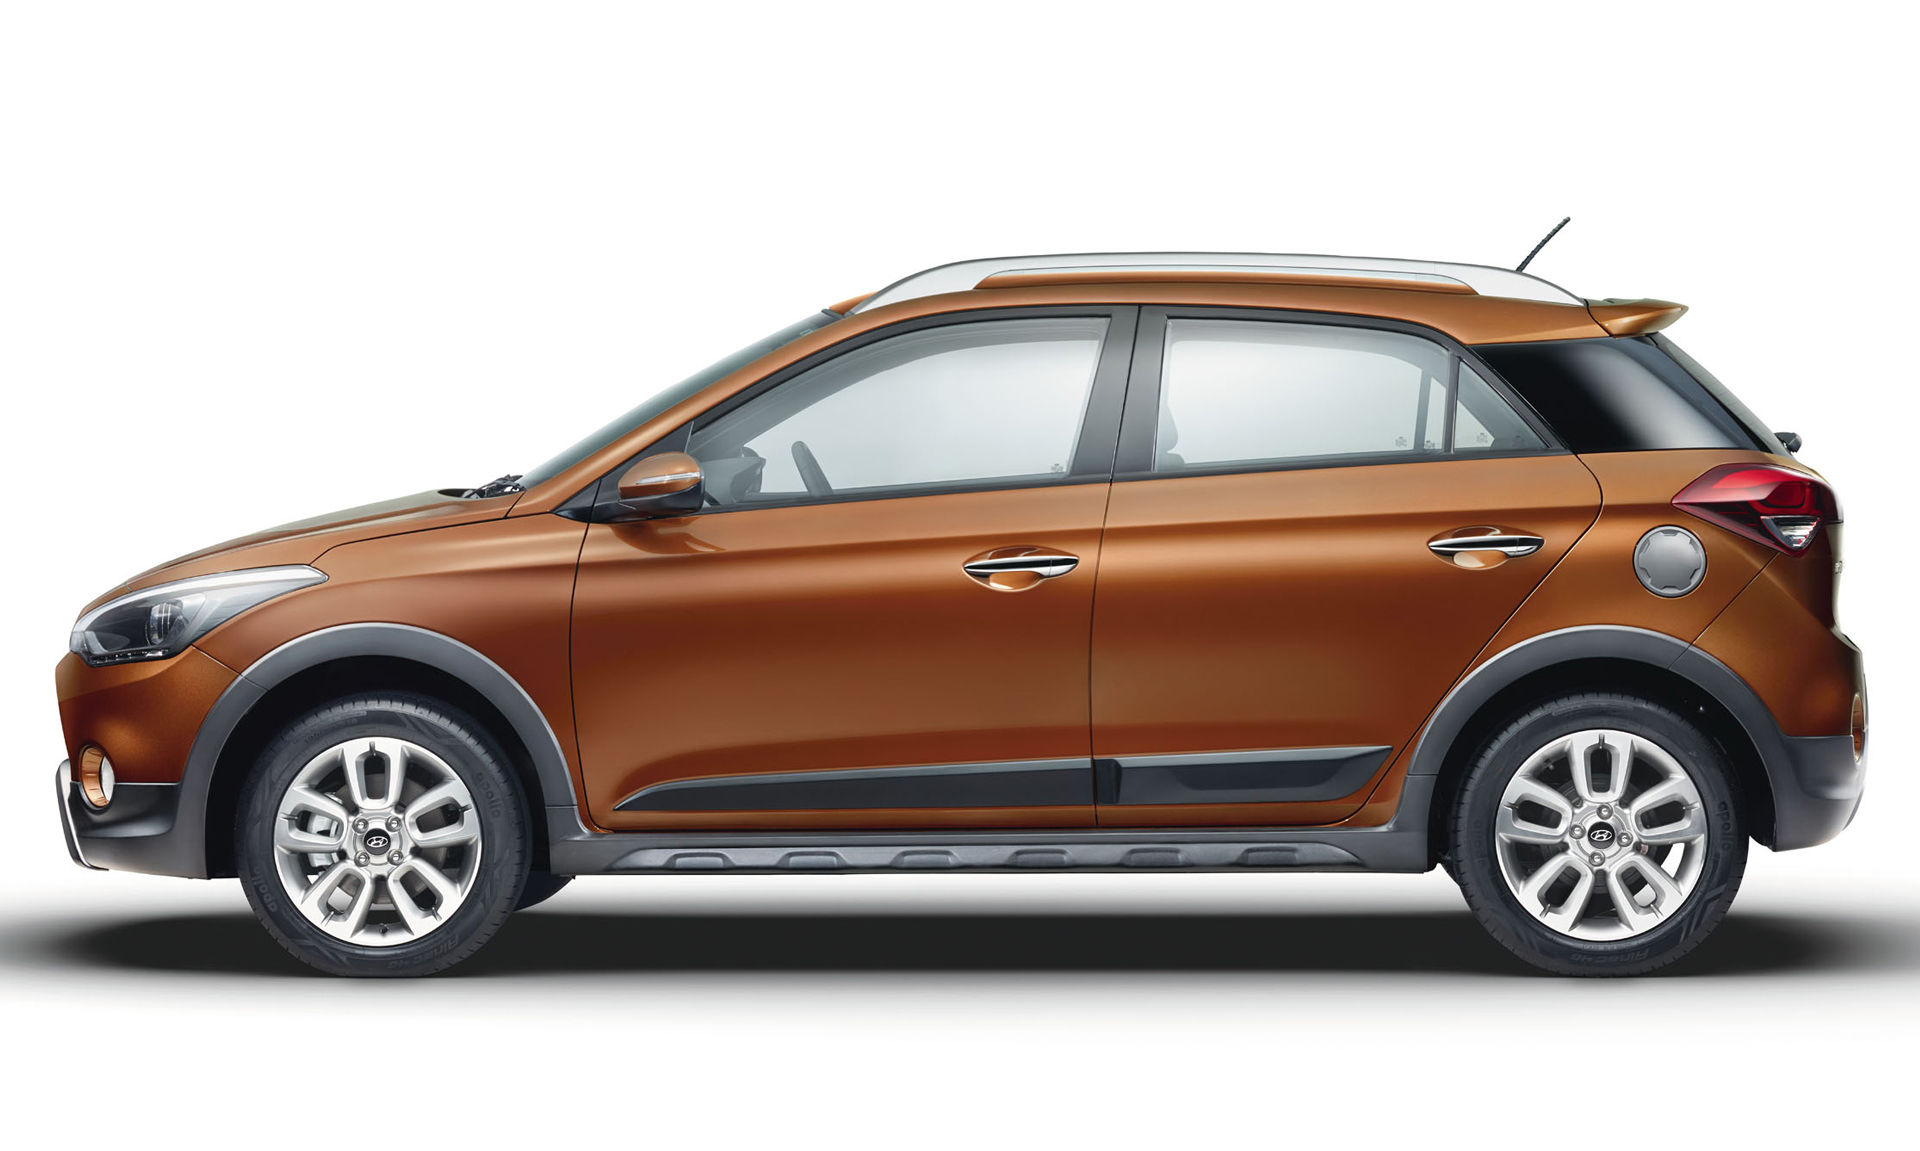 hyundai i20 active launched in india 5 variants  from rs hyundai i30 manual 2011 hyundai i30 manual 2015